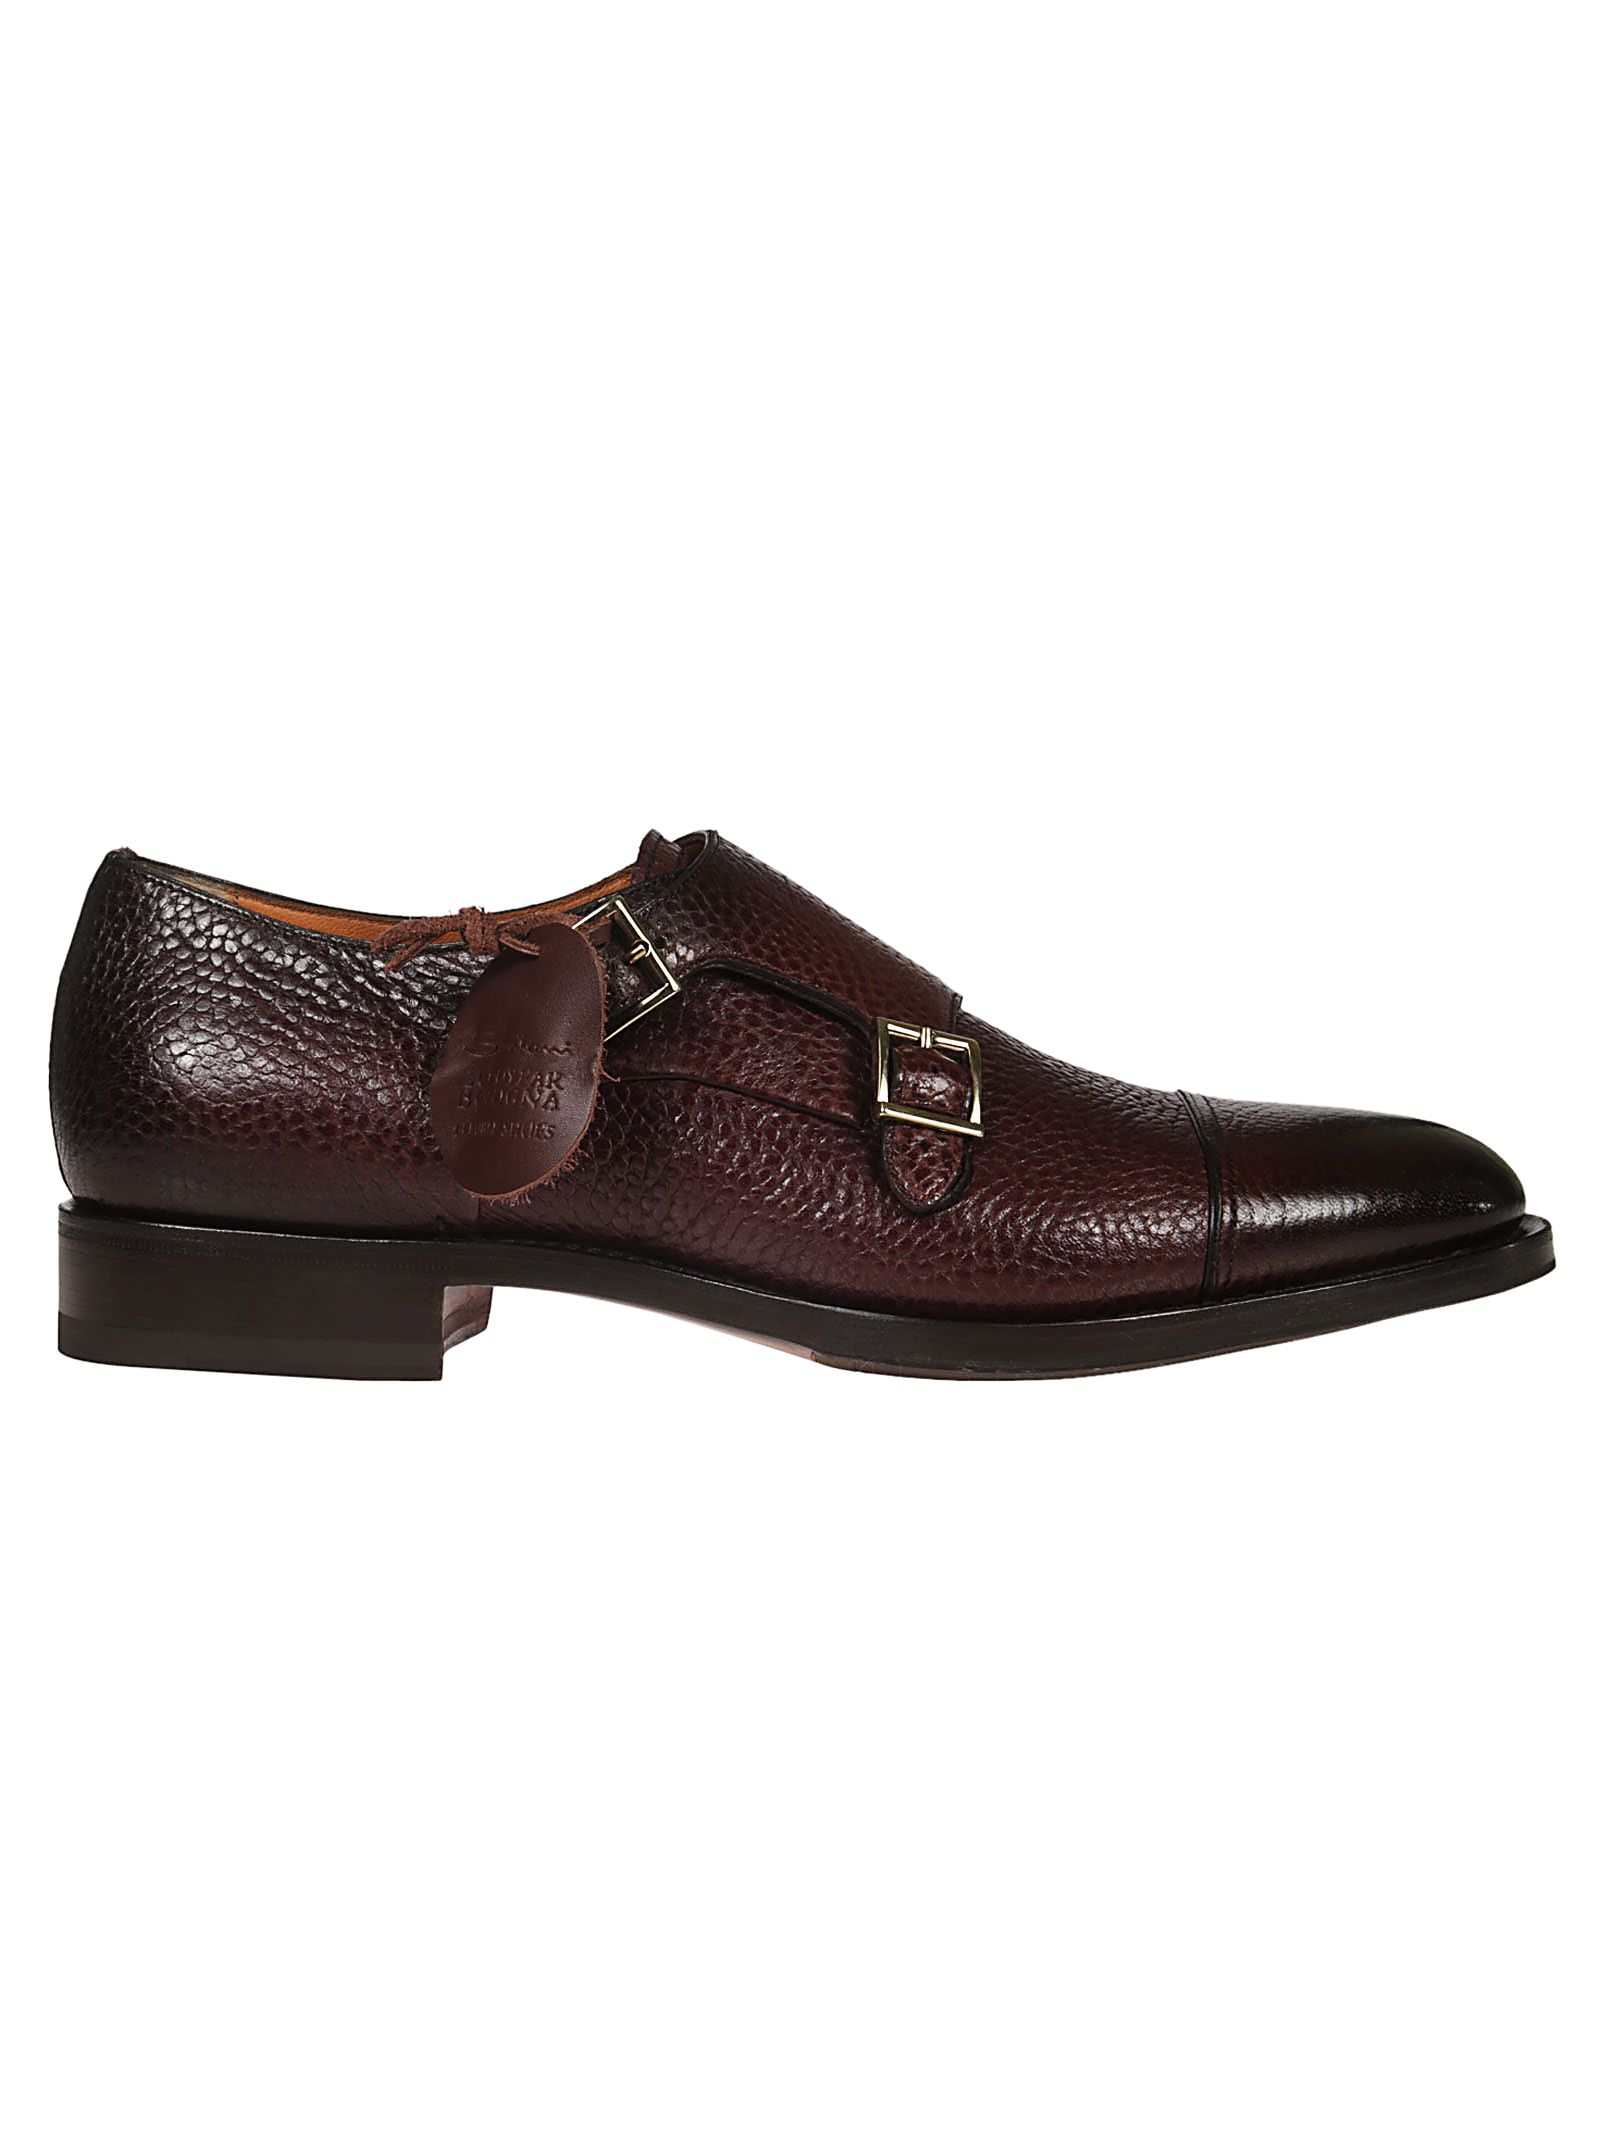 SANTONI BUCKLED MONK SHOES